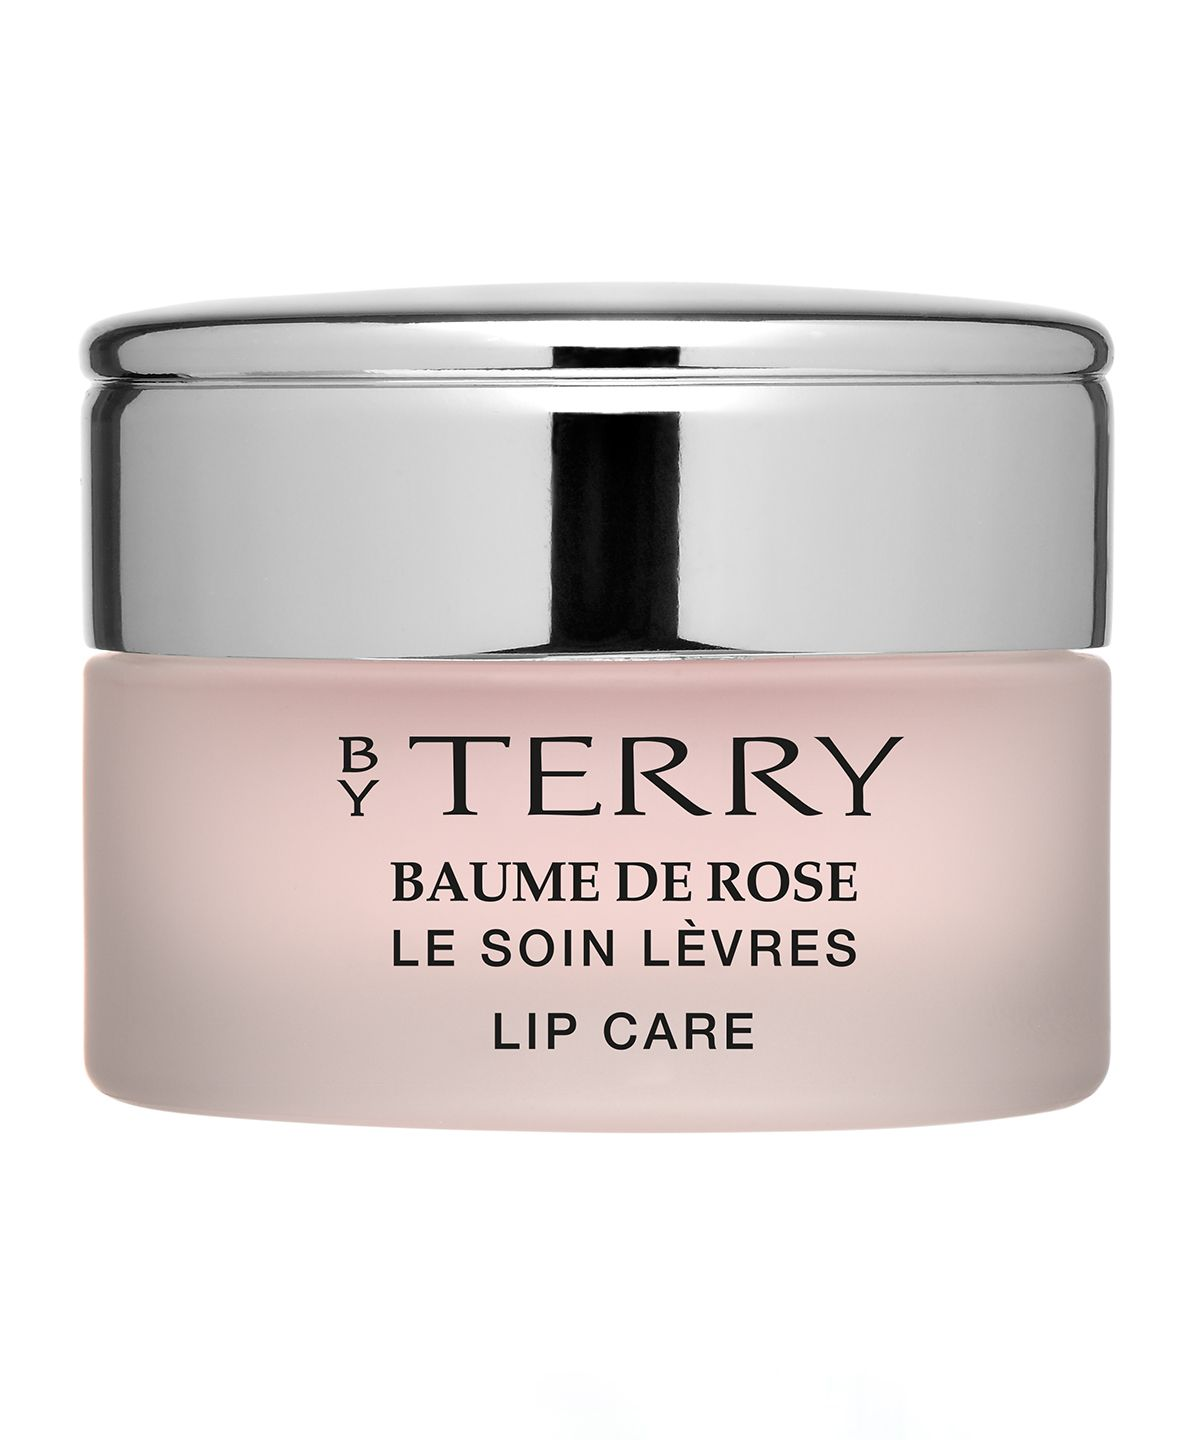 Image De Rose Baume De Rose By By Terry